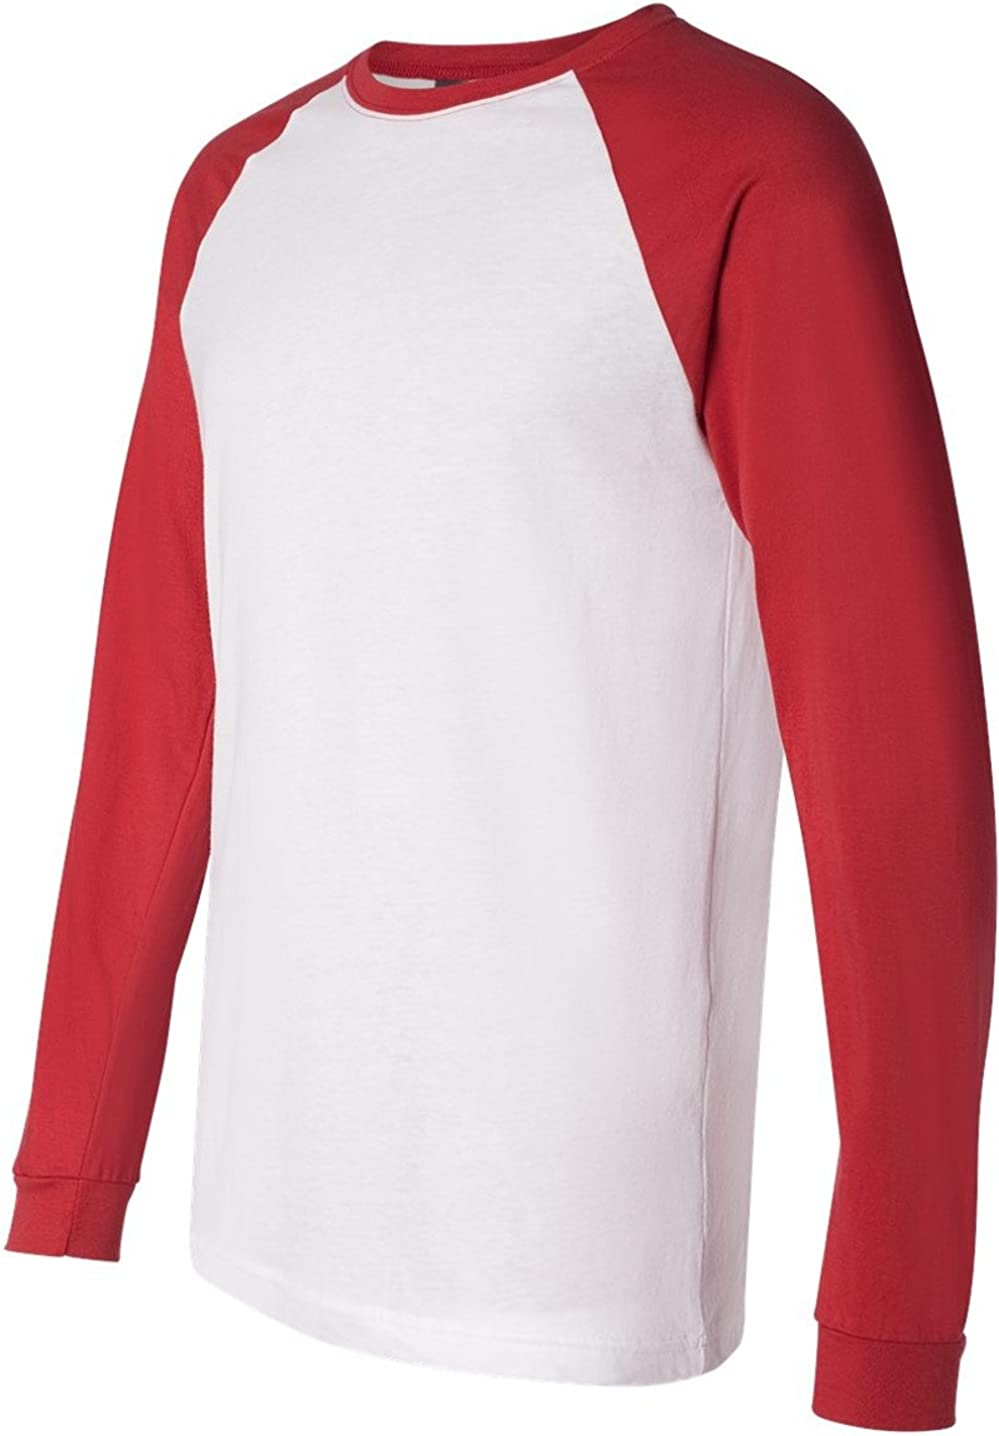 RED Bella Canvas Mens Fashionable Jersey T-Shirt